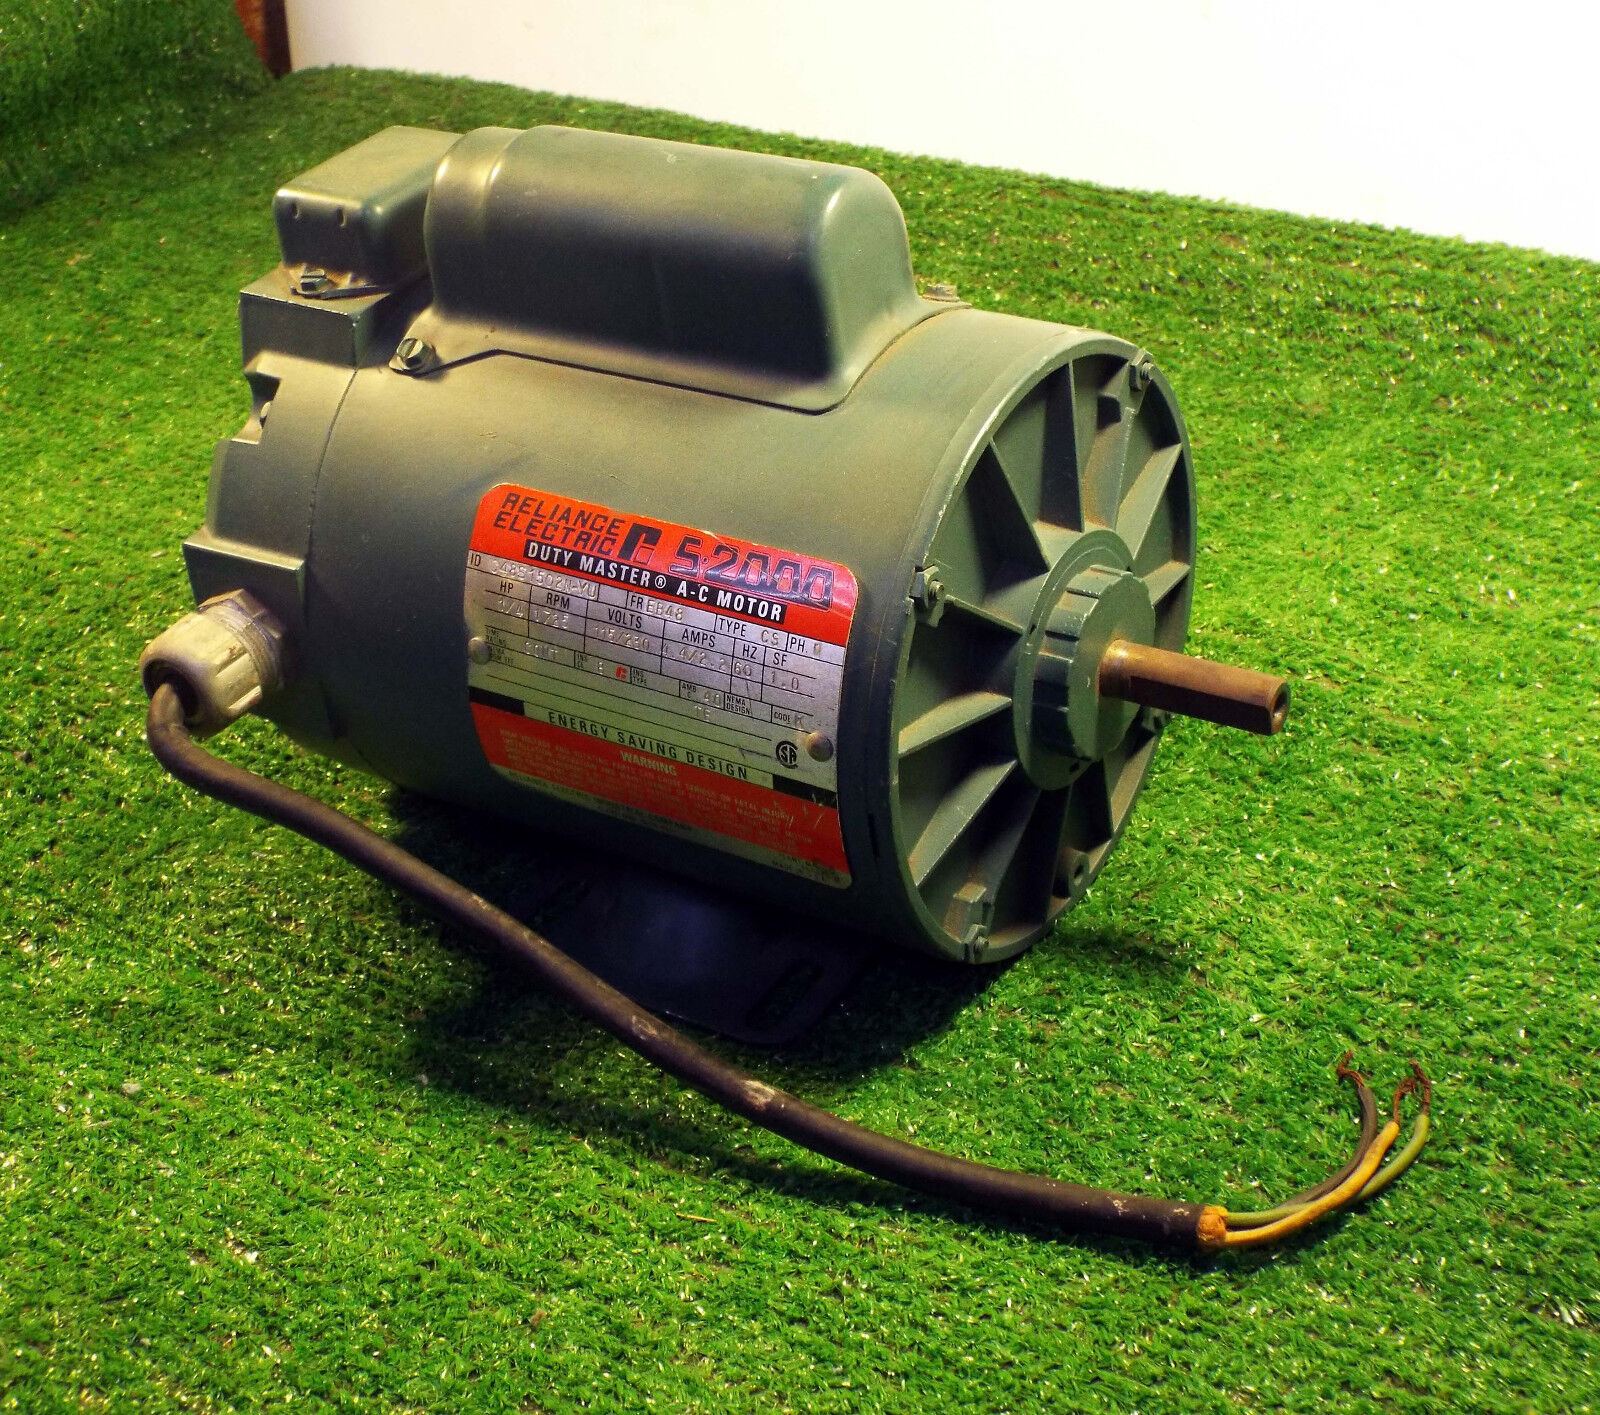 1 USED RELIANCE ELECTRIC C48S1502N-YU A-C MOTOR DUTY MASTER, 1 4 HP, 1725 RPM